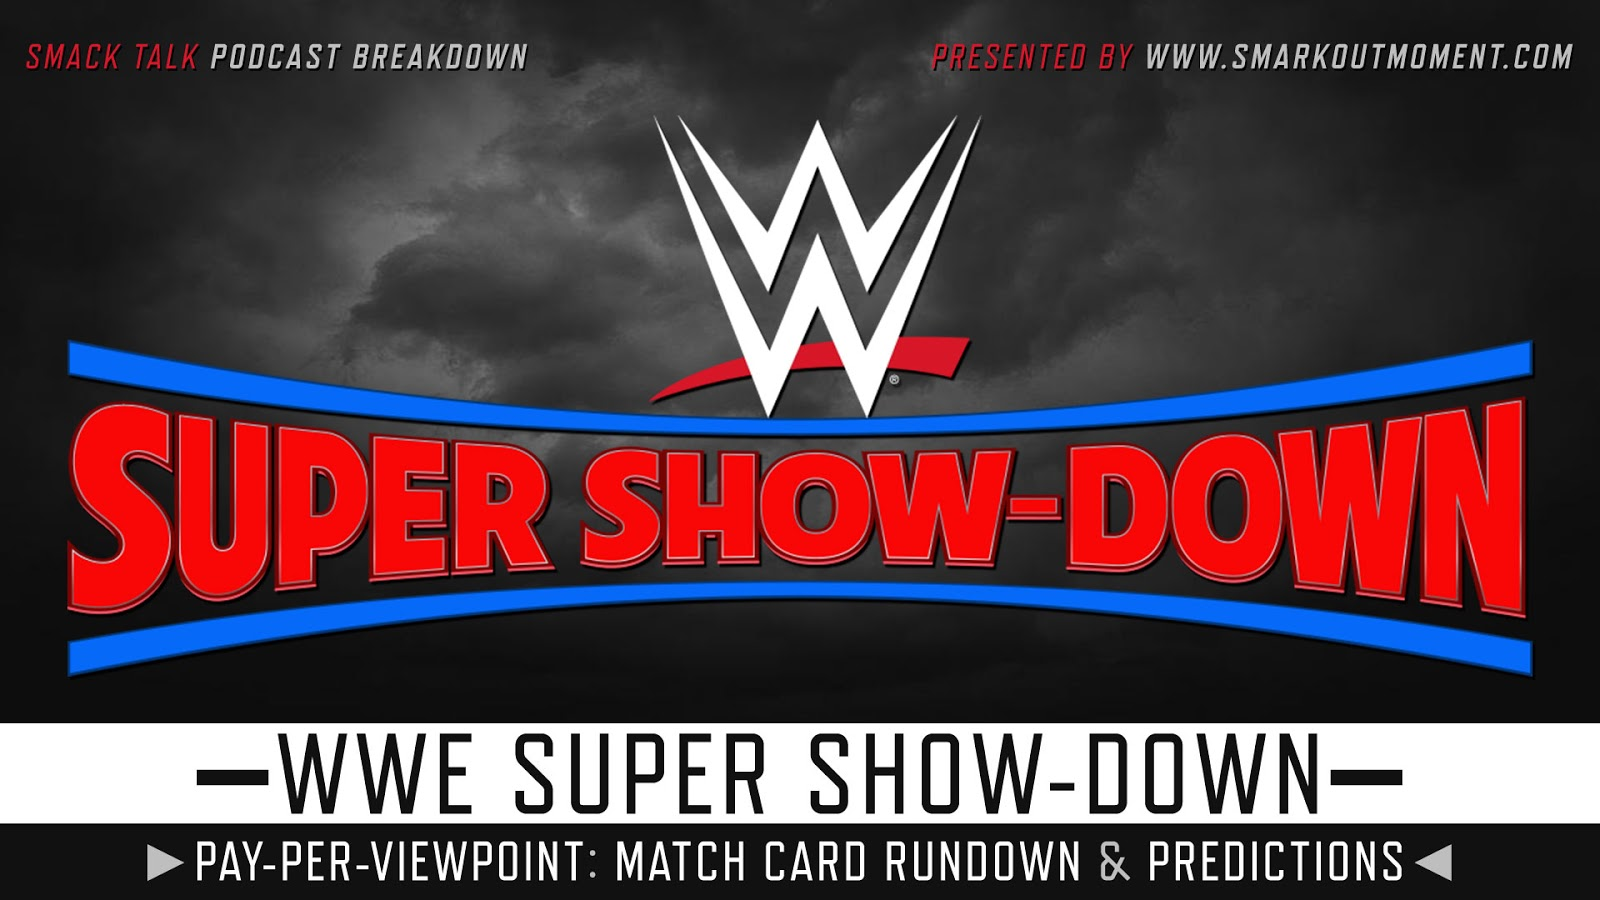 WWE Super Show-Down 2018 spoilers podcast